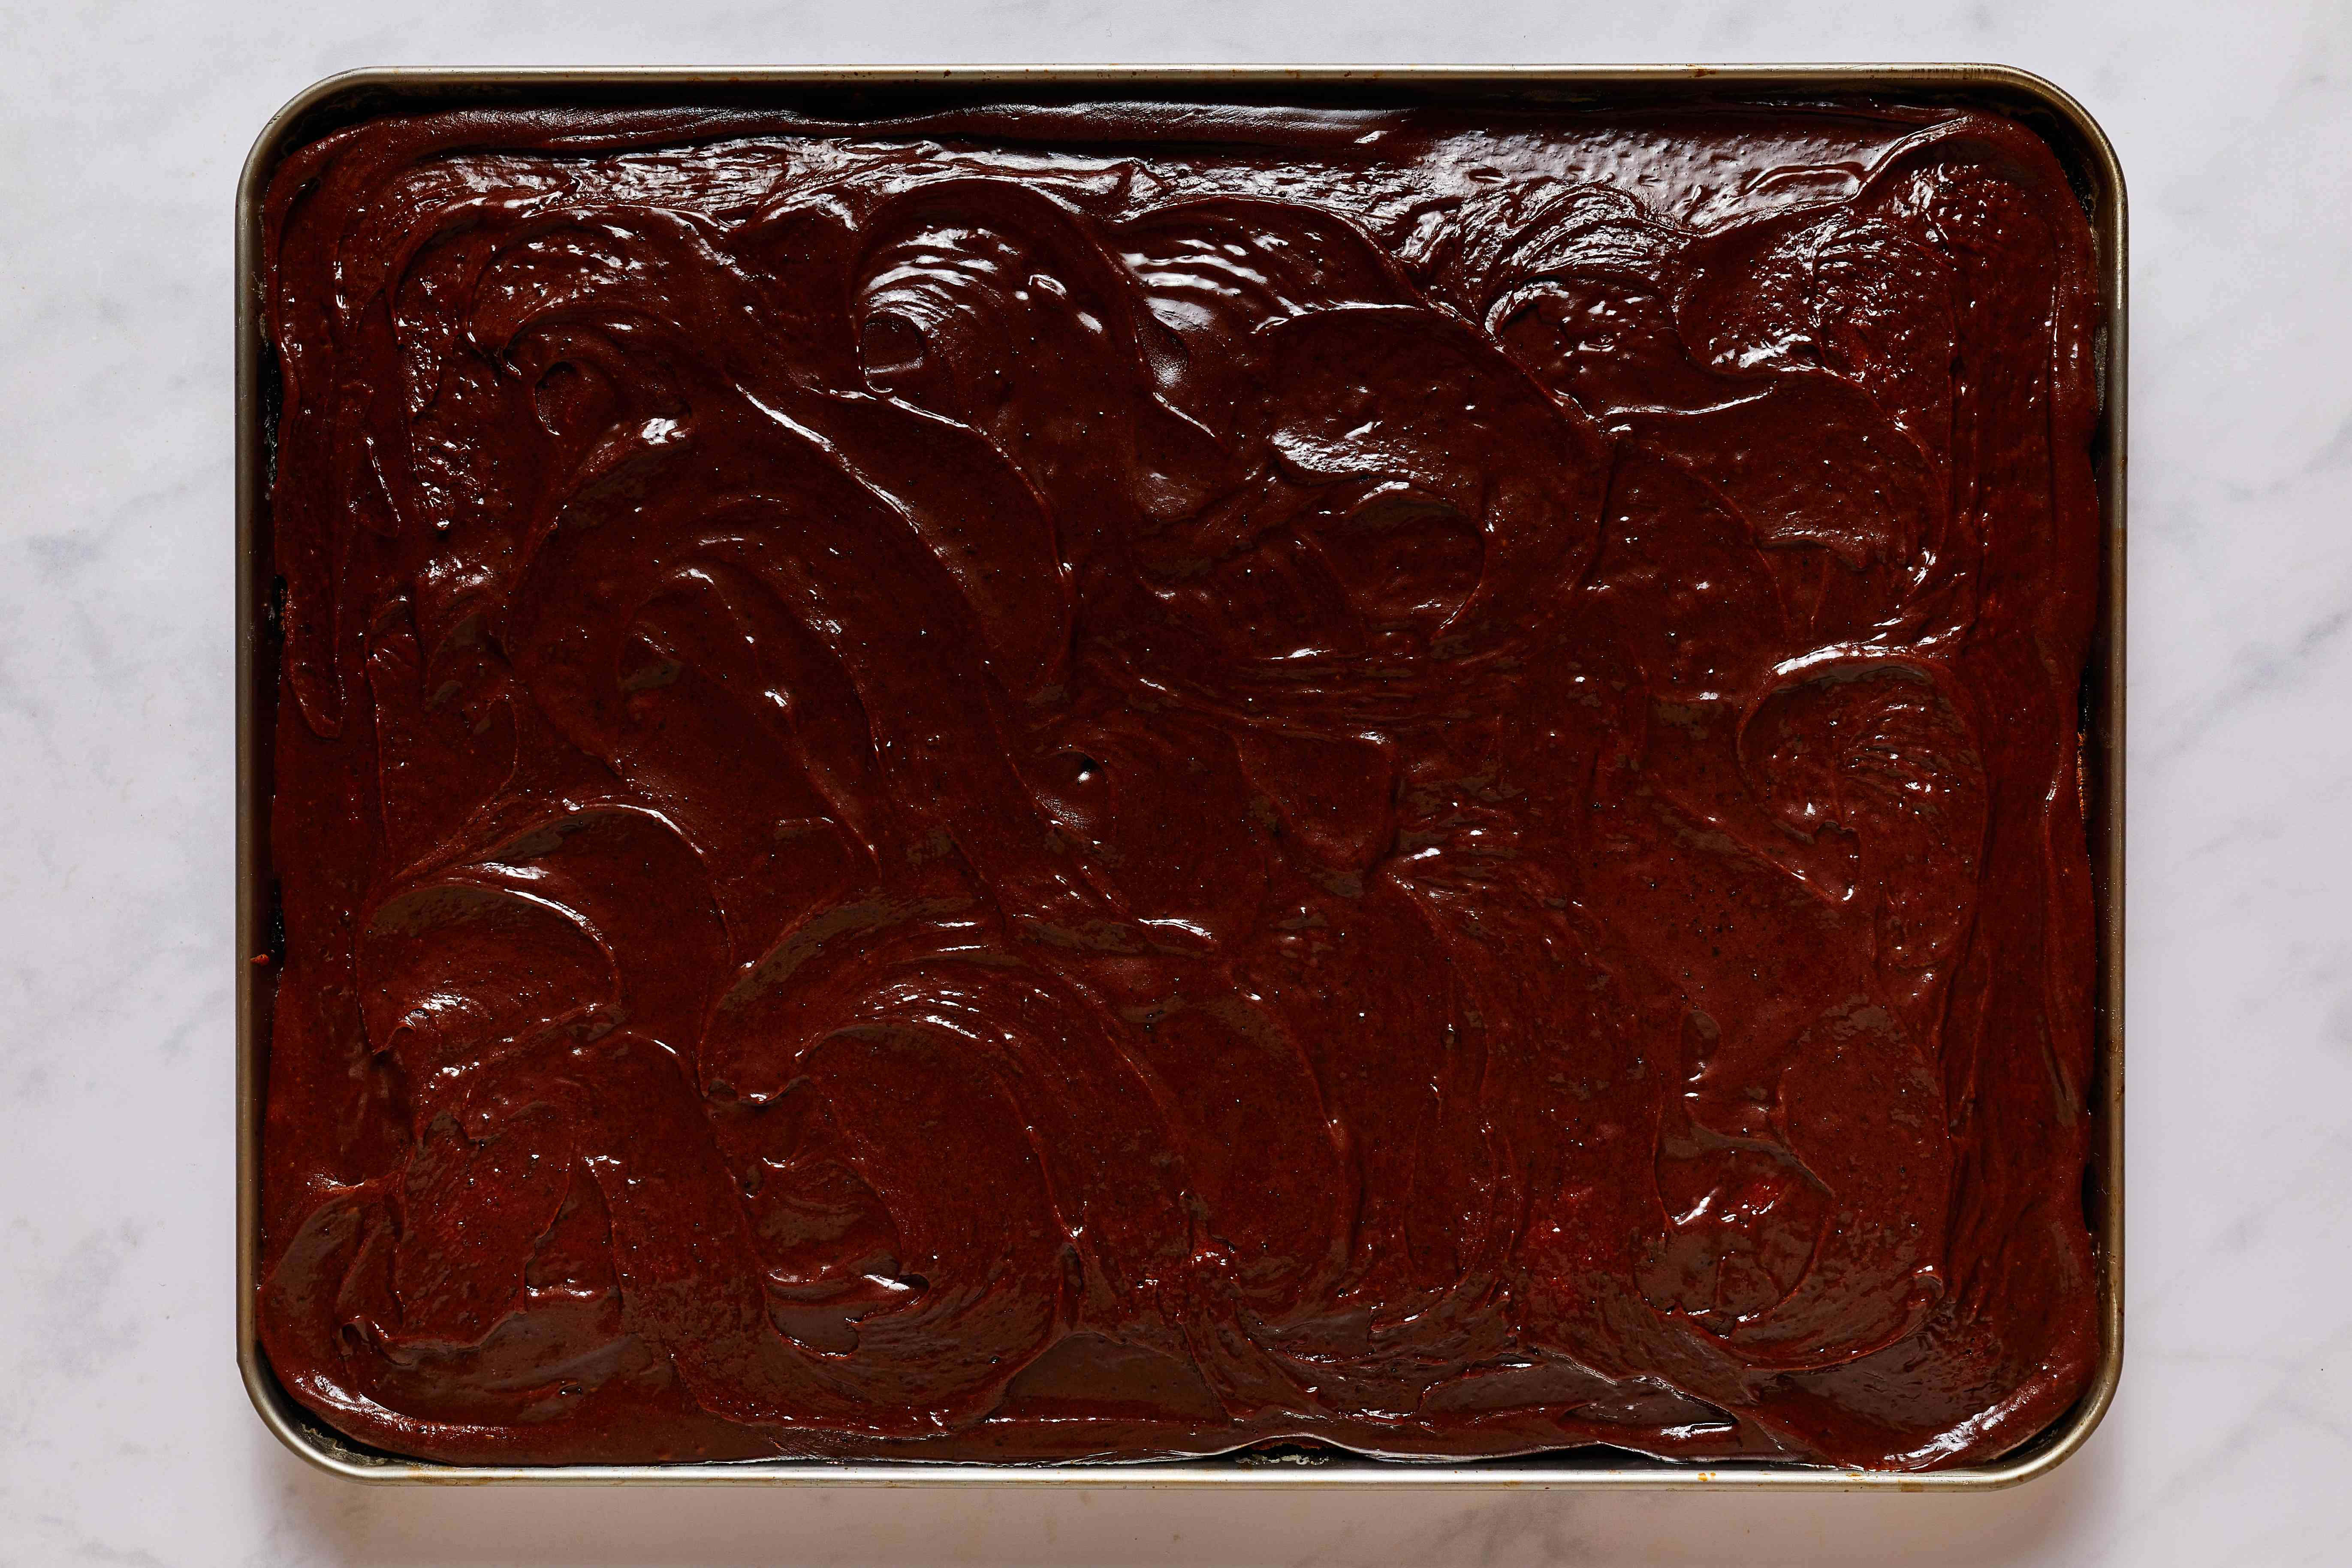 frosting on top of the baked brownies